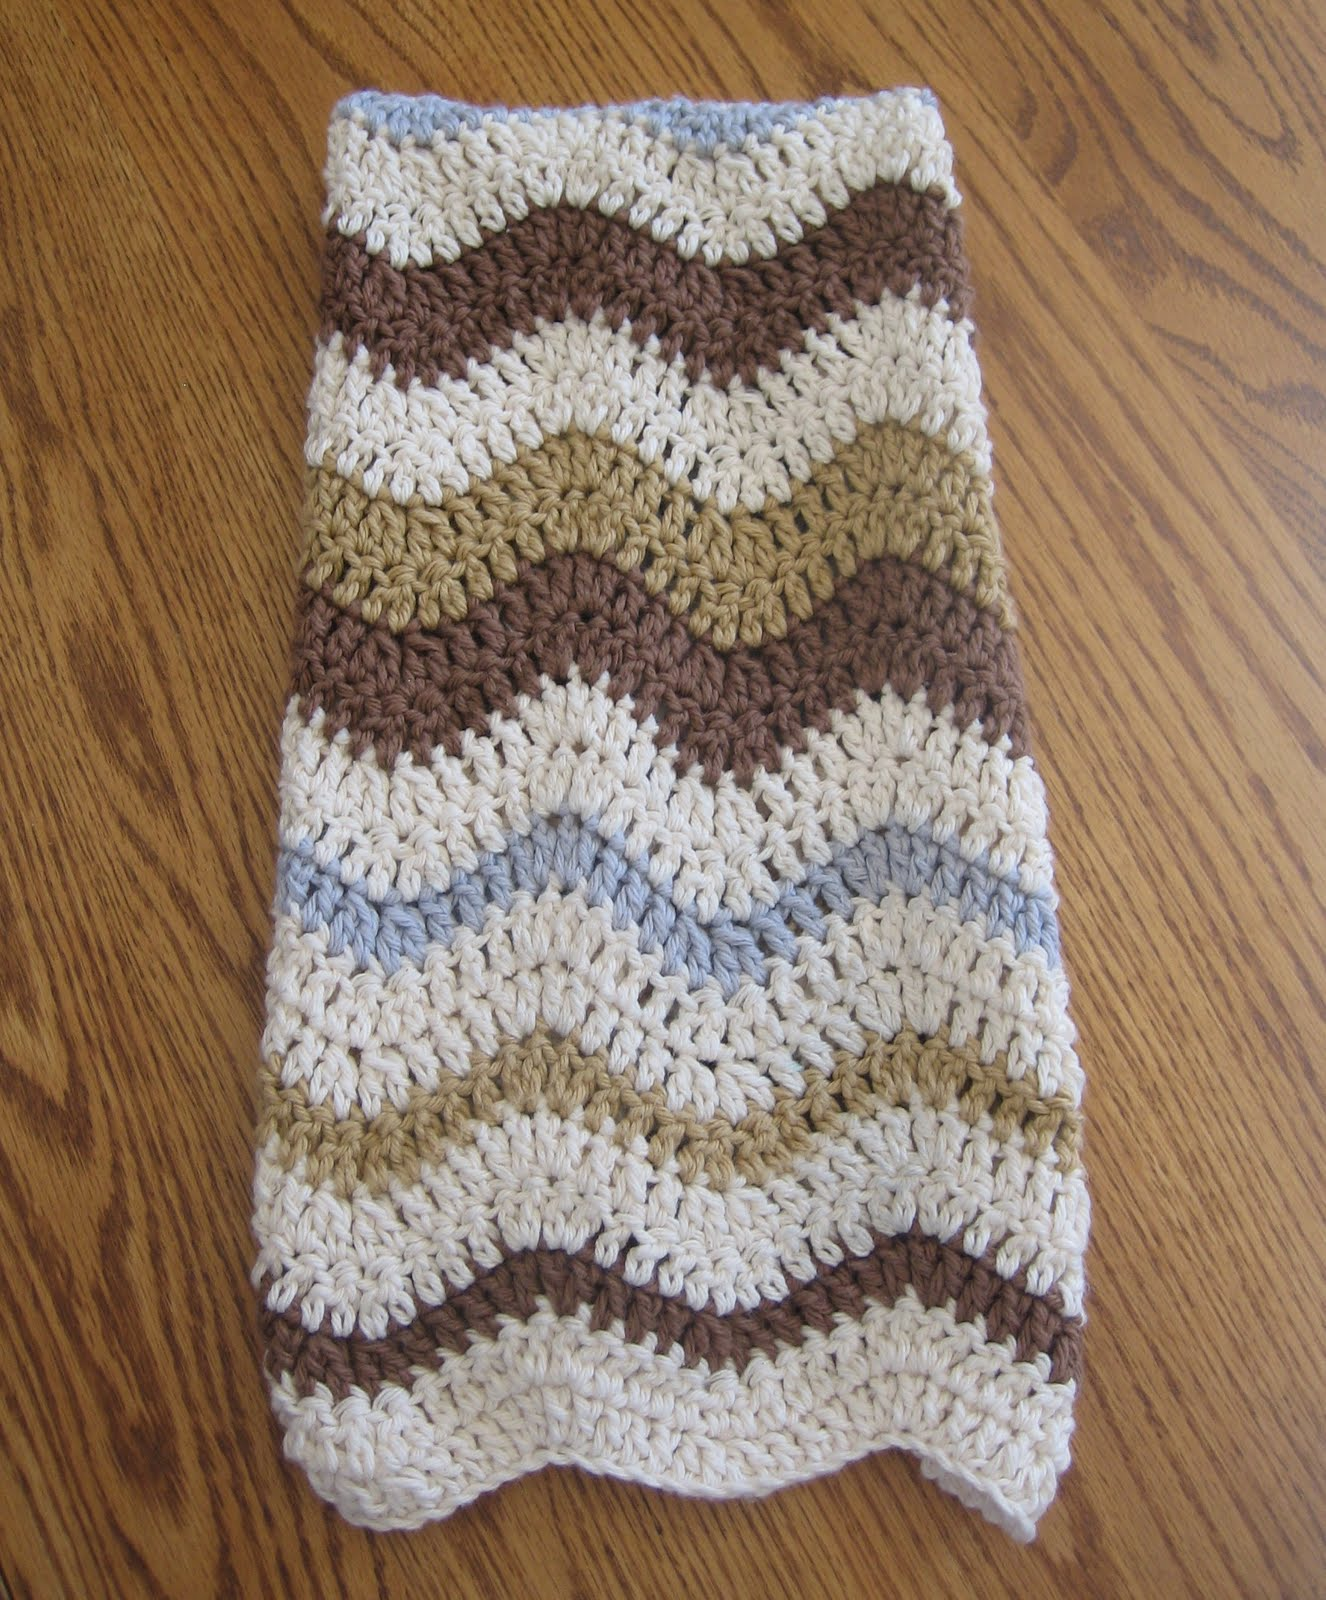 Crochet Kitchen Towel : FREE CROCHET TOWEL PATTERN FOR THE KITCHEN Crochet Patterns